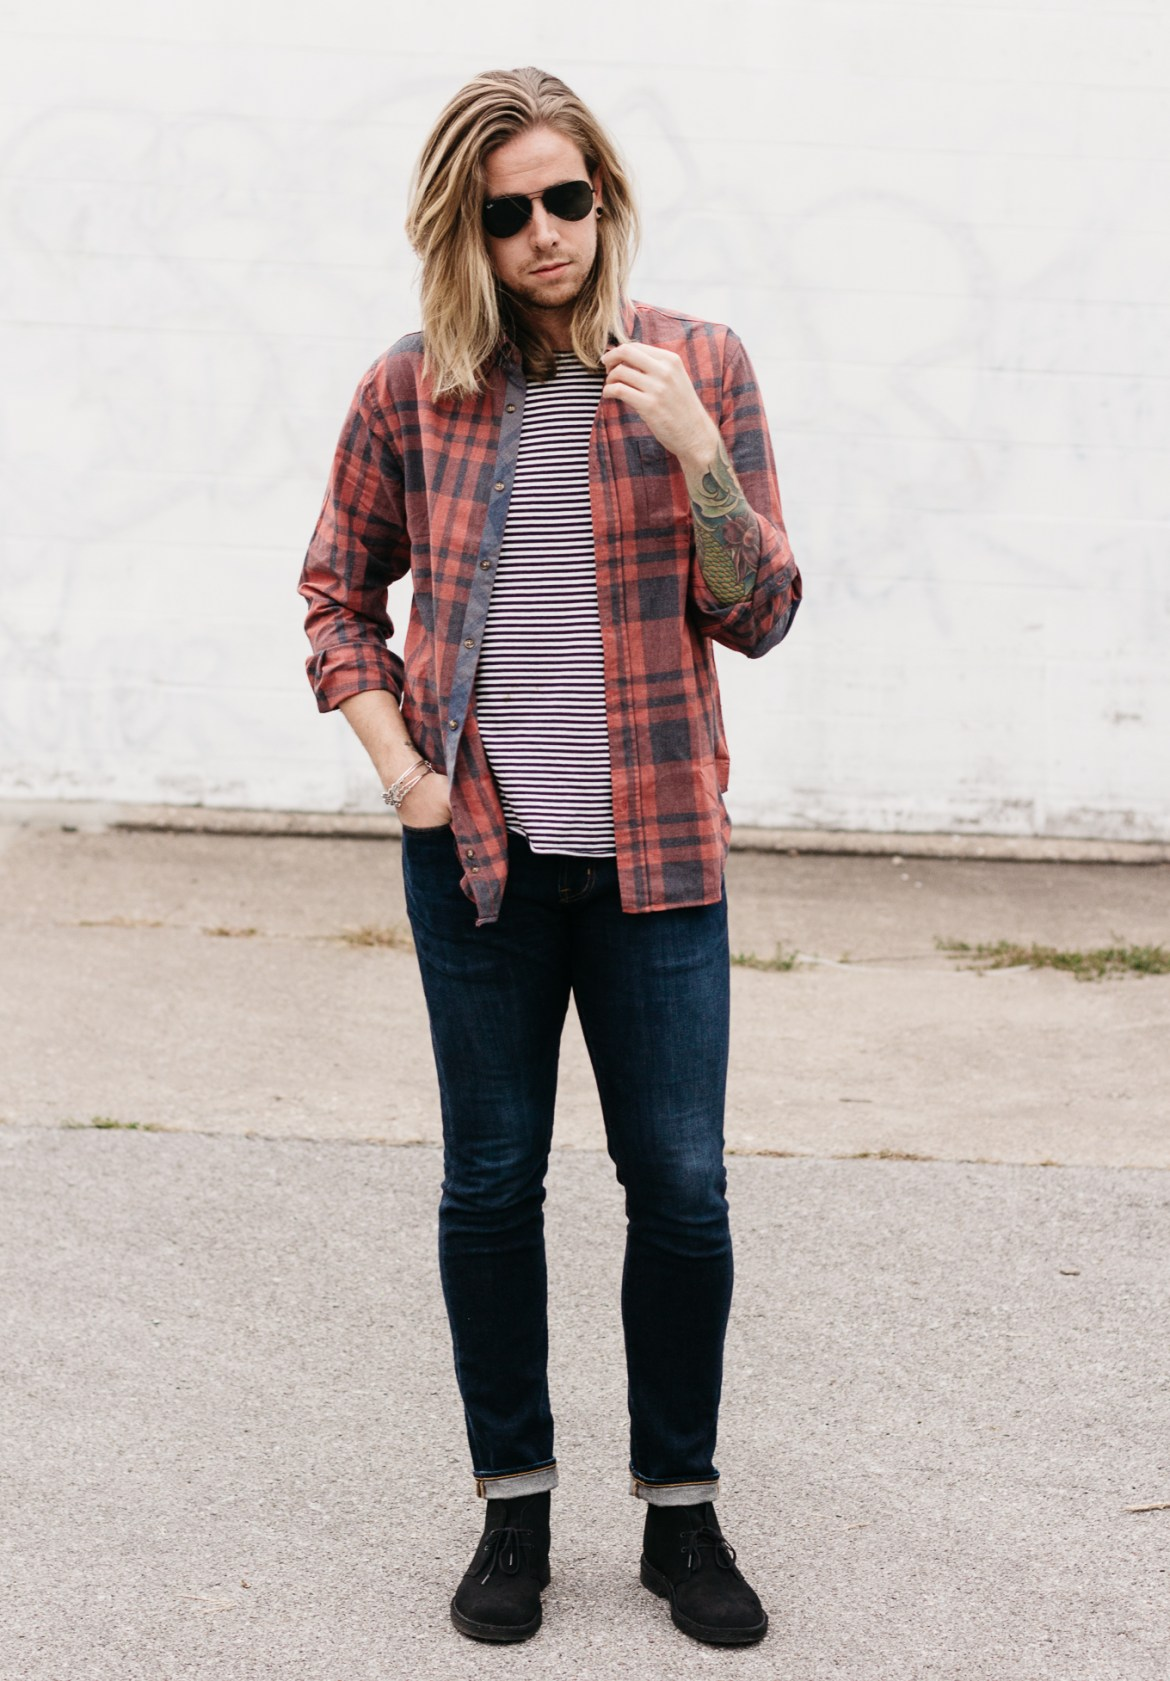 living proof hair care, big star denim, five four clothing company, mens fall fashion, how to wear stripes and plaid